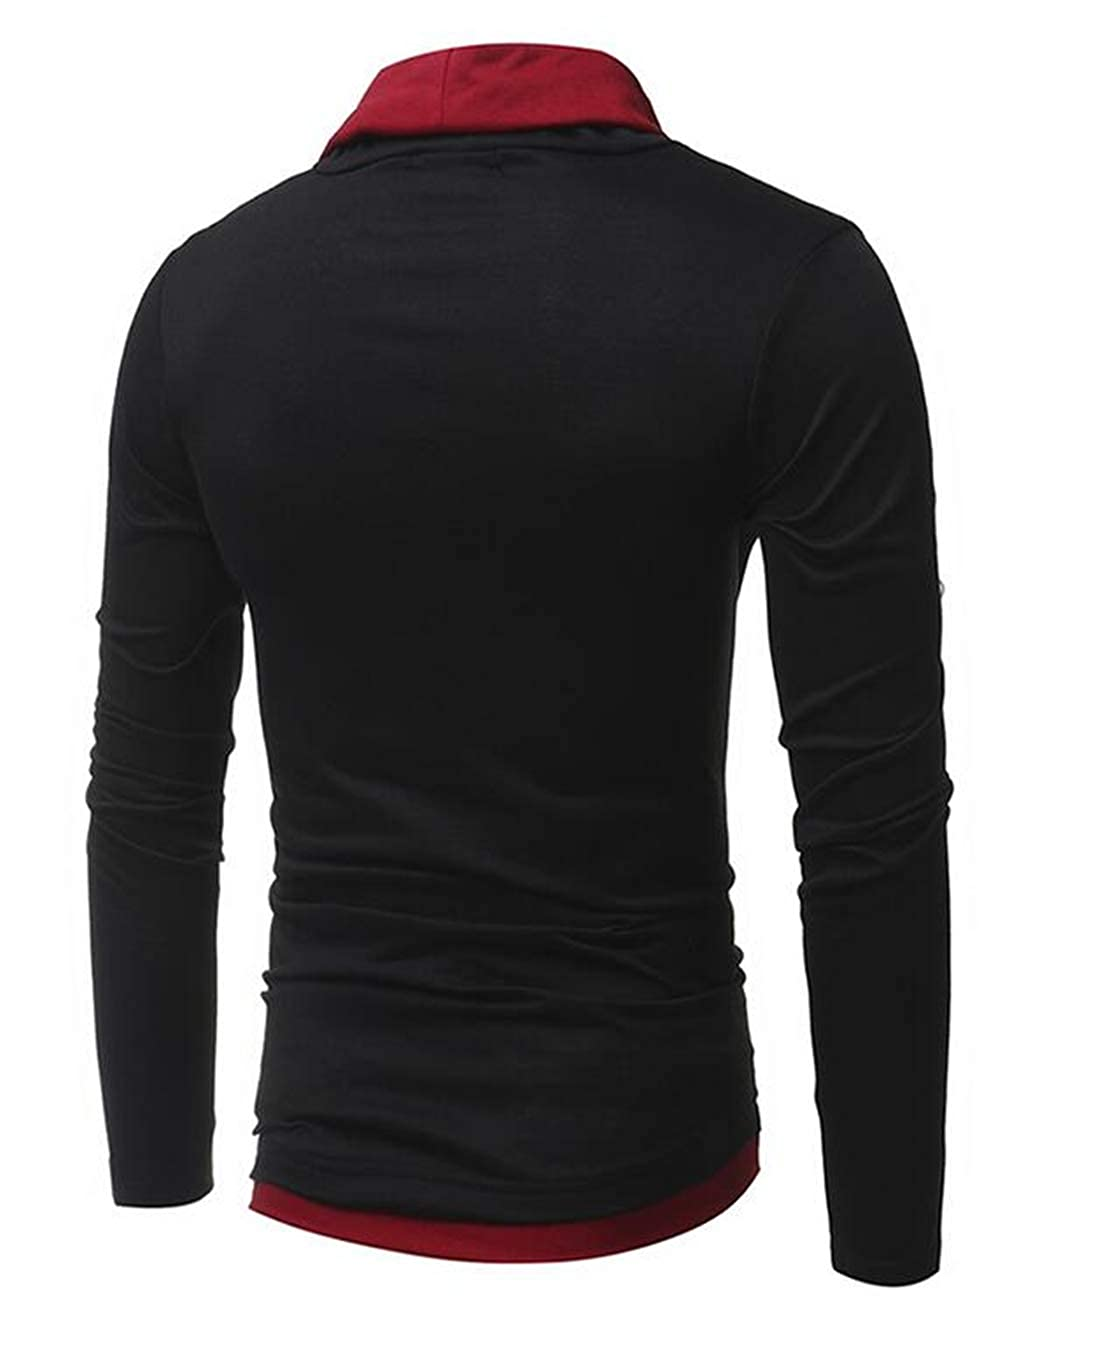 Domple Mens Long Sleeve Basic Drawstring Slim Fit Casual T-Shirts Tops